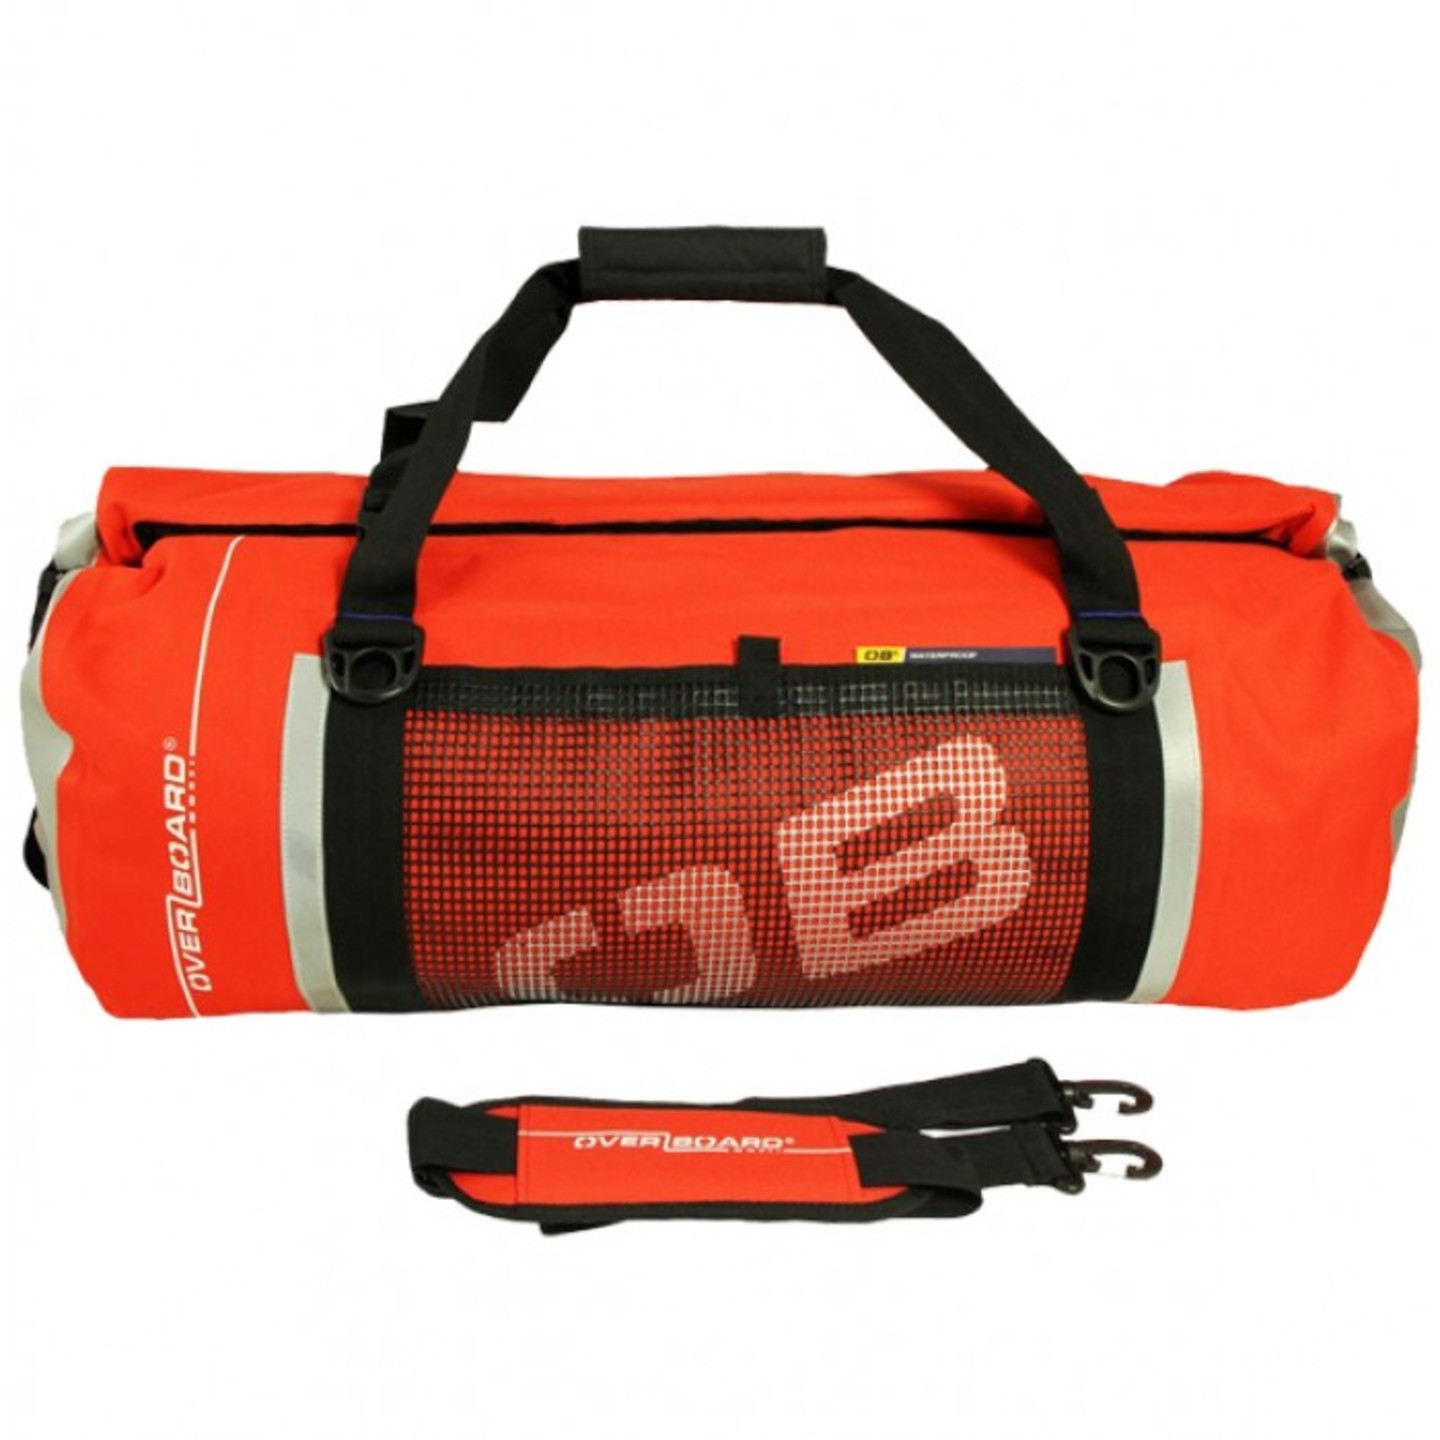 Overboard 60 Litres Duffel